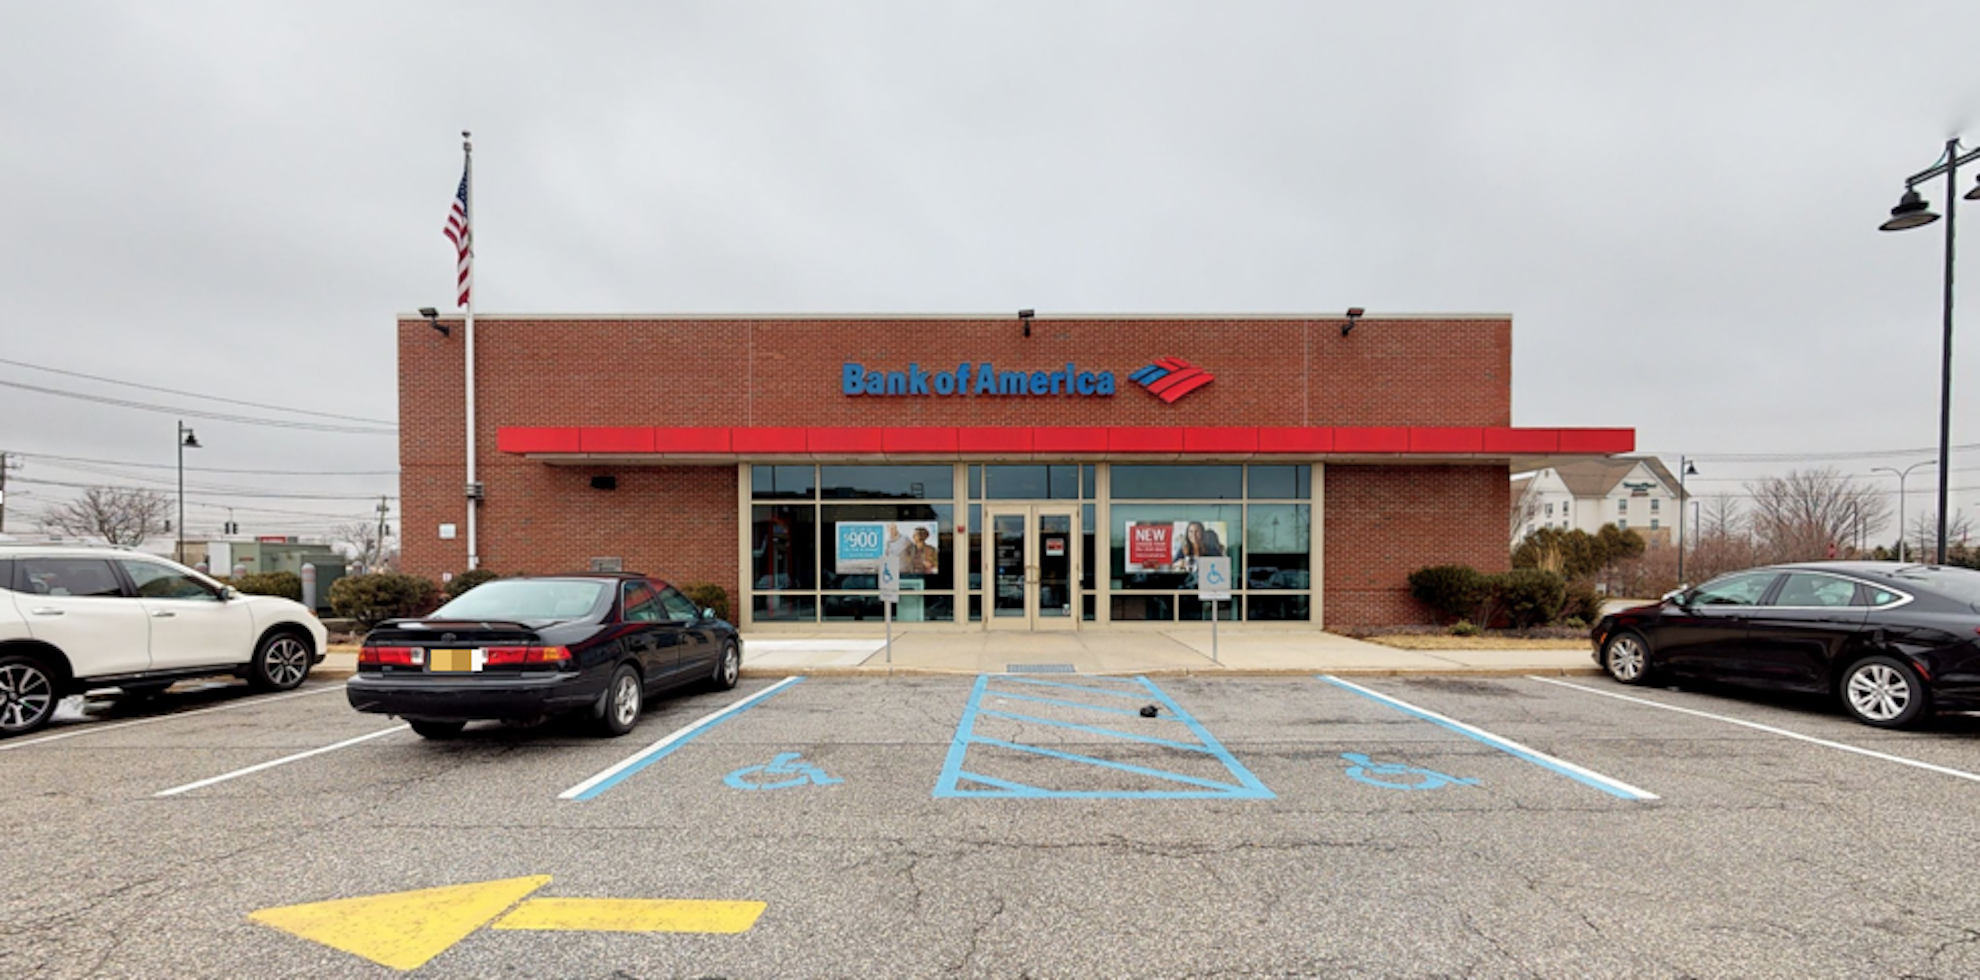 Bank of America financial center with drive-thru ATM   927 Route 110, Farmingdale, NY 11735